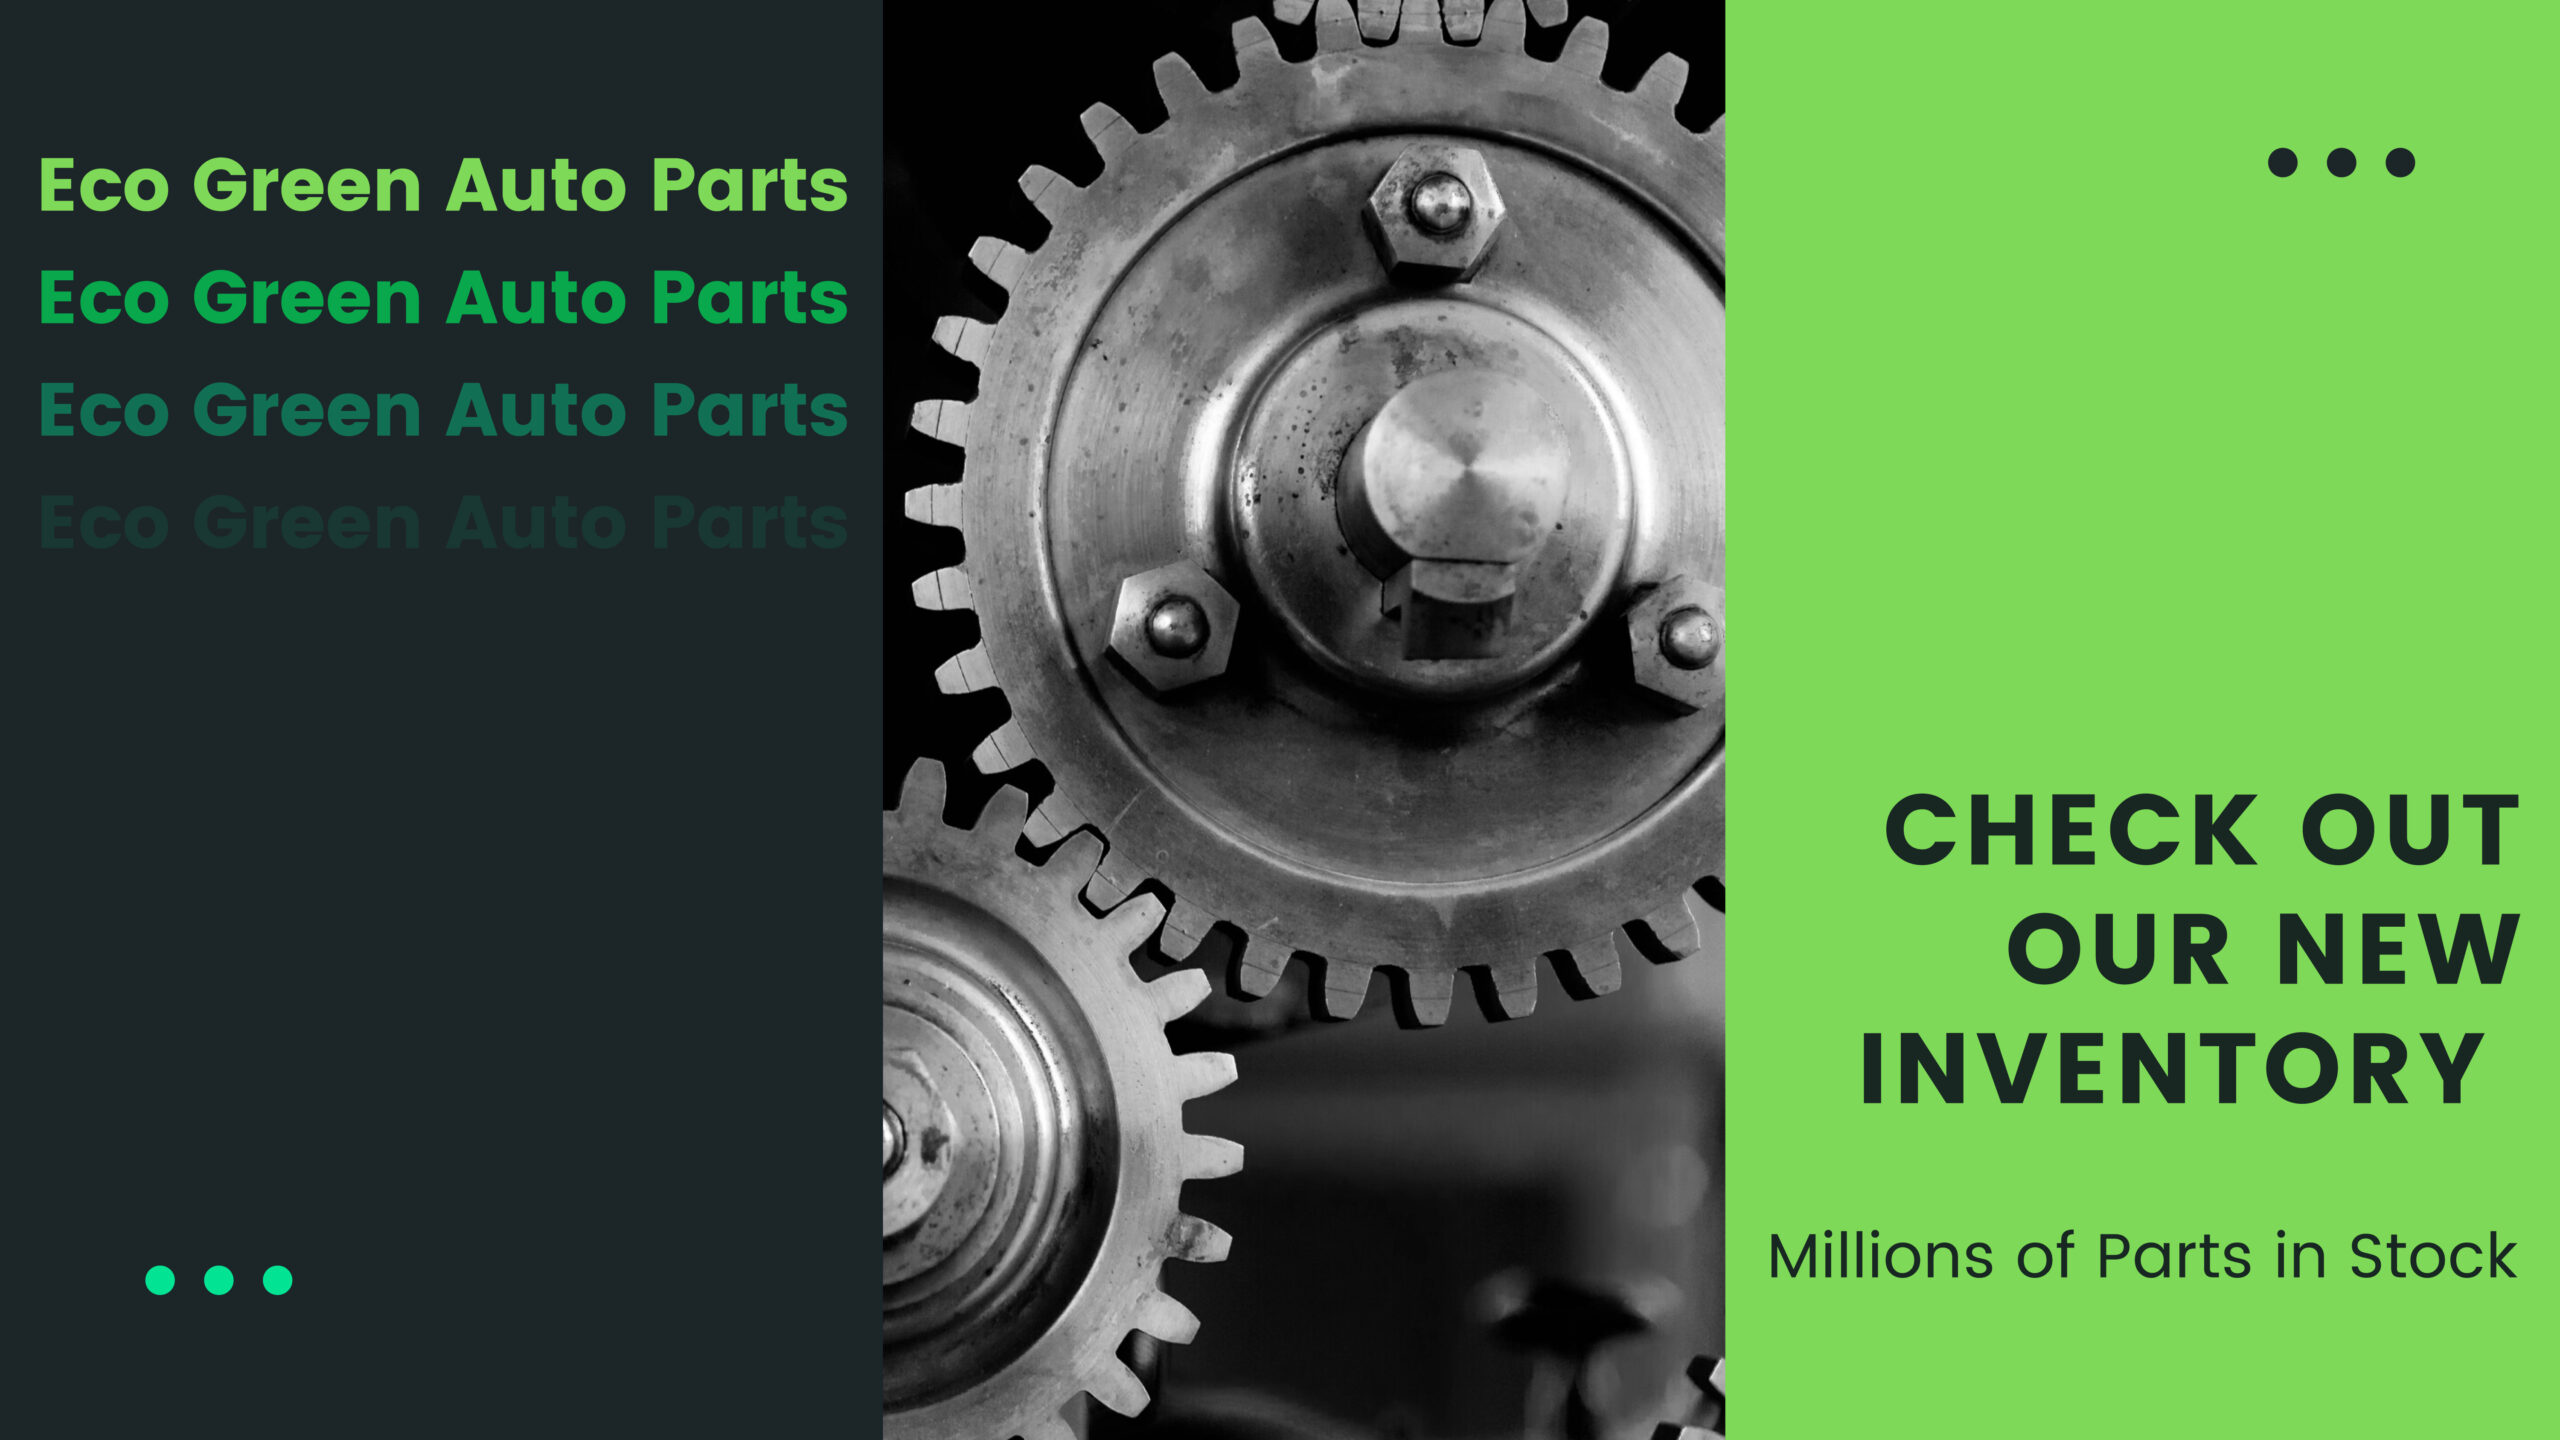 Eco Green Auto Parts: Check Out Our New. Millions of Parts in Stock